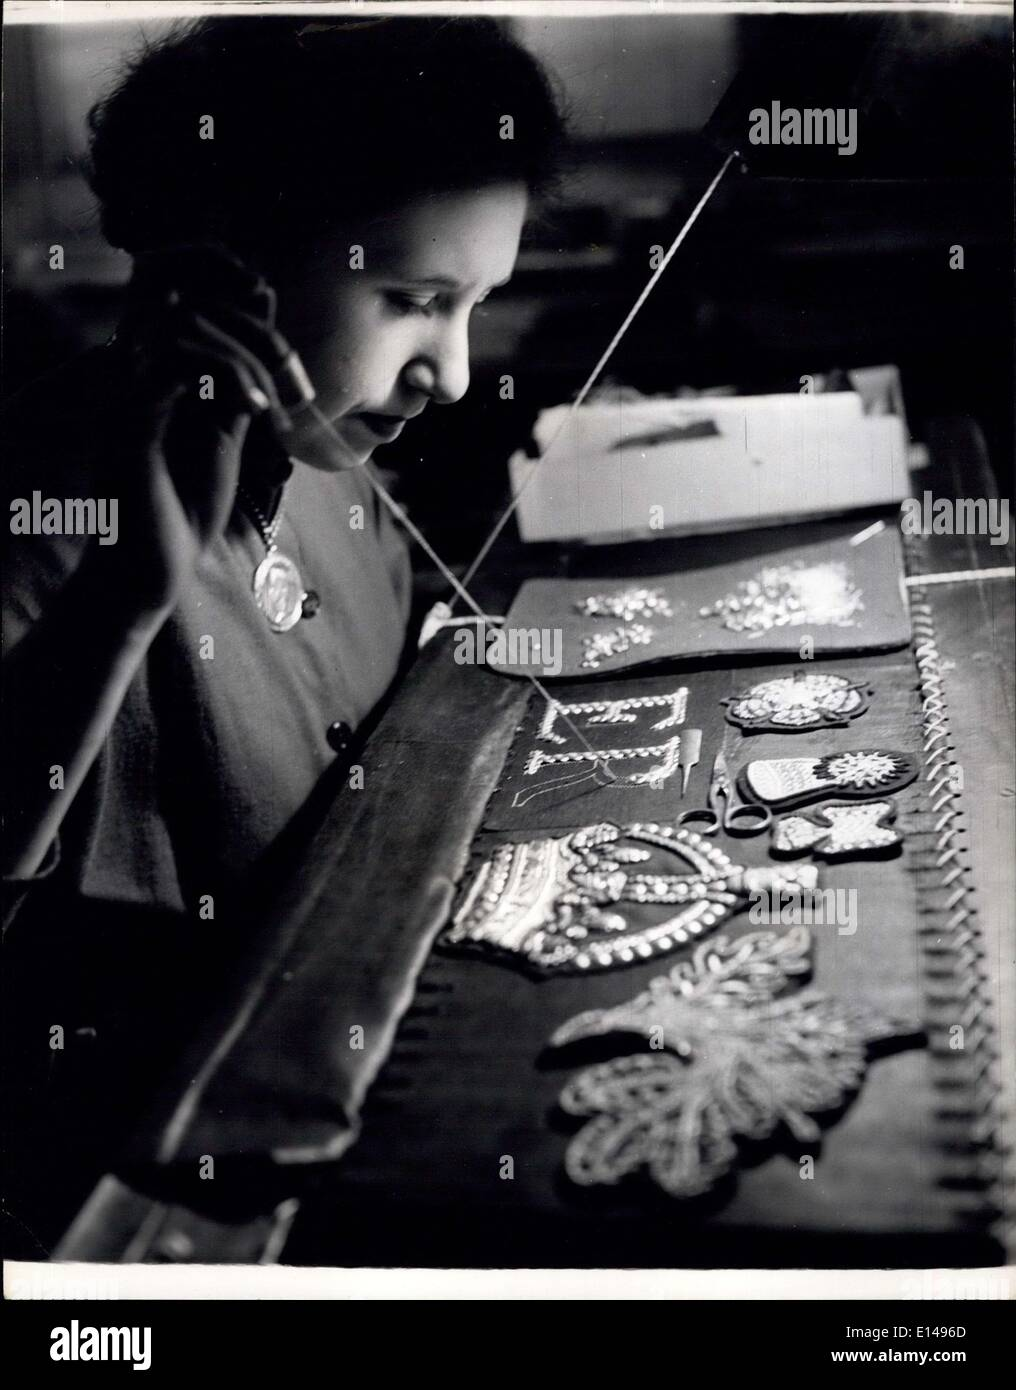 Apr. 17, 2012 - Embroidering the crown and the E.R. Cipher which a does the well known scarlet tunics of the Yeomen Stock Photo